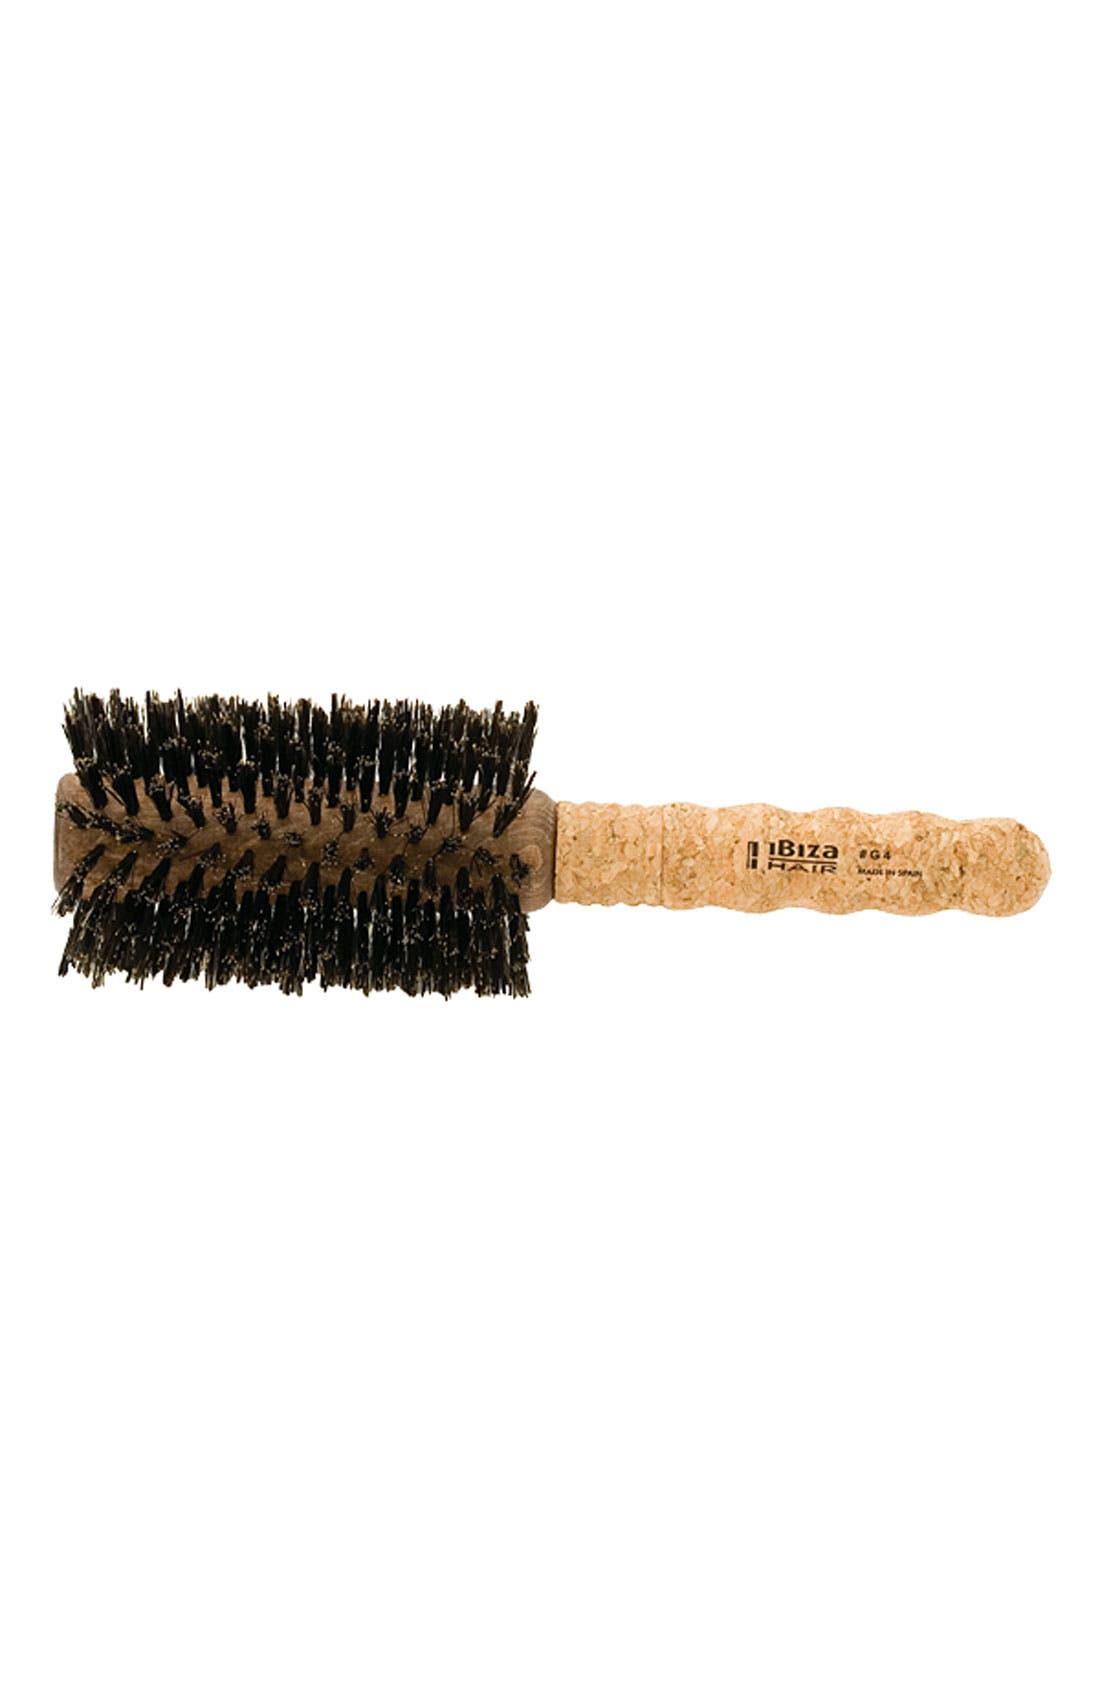 G4 Swirled Extended Cork Round Brush,                             Main thumbnail 1, color,                             NO COLOR